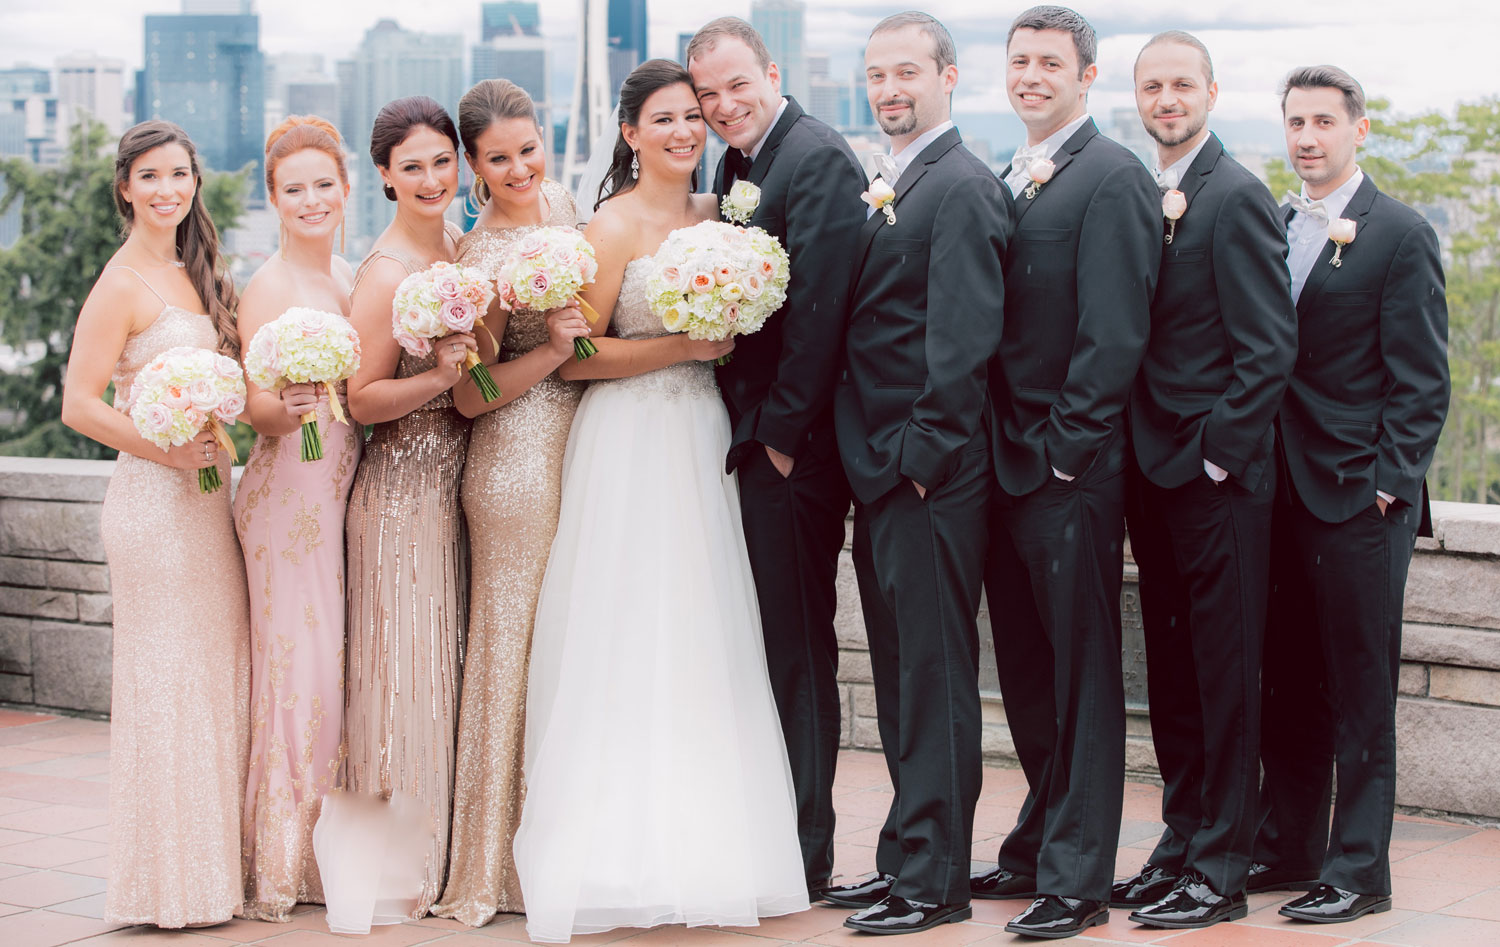 four-seasons-seattle-wedding-clane-gessel-photos-12